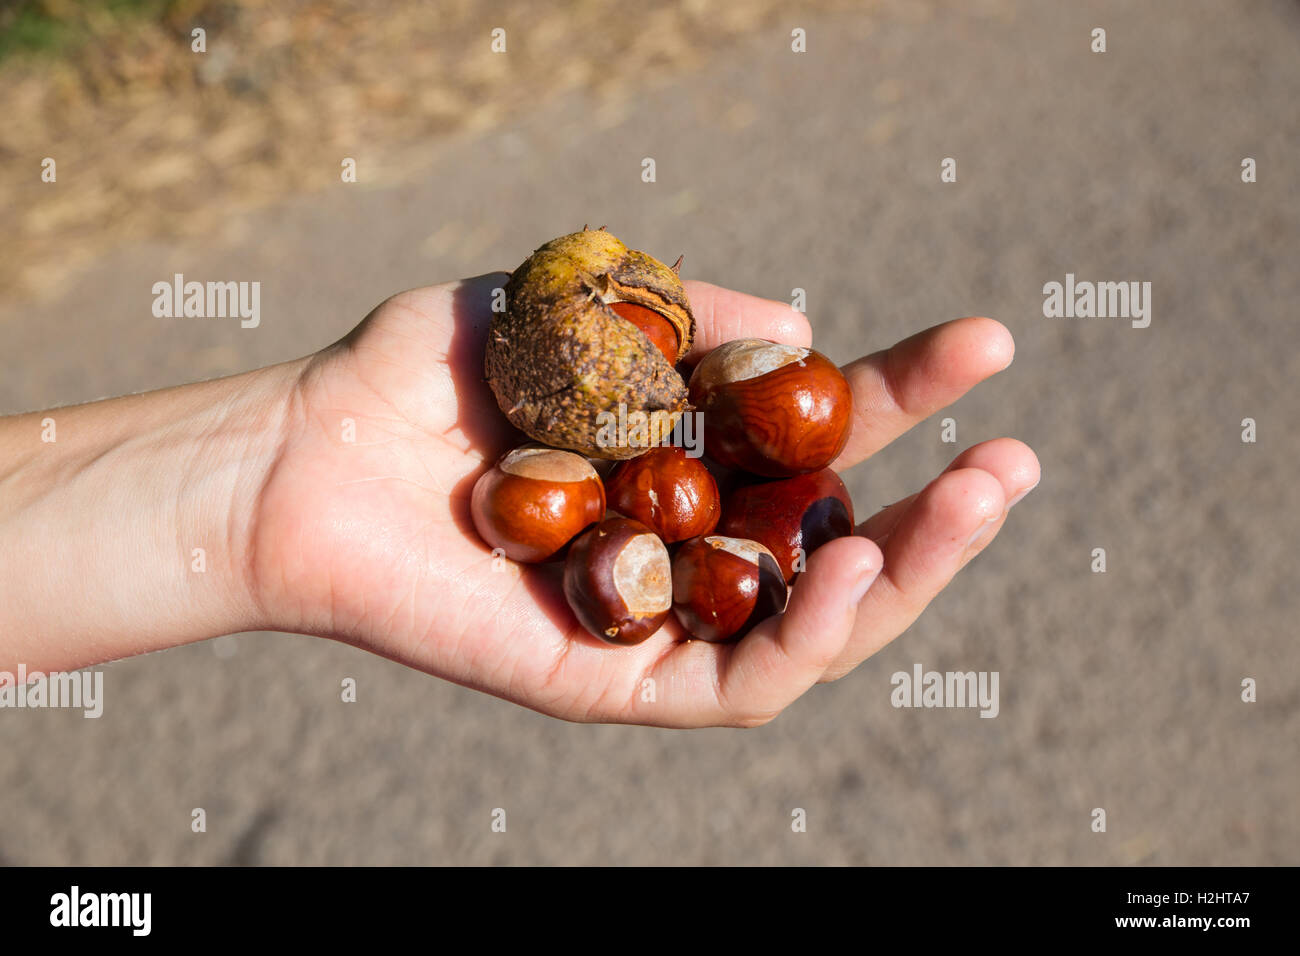 Girl's hand holding conkers. - Stock Image